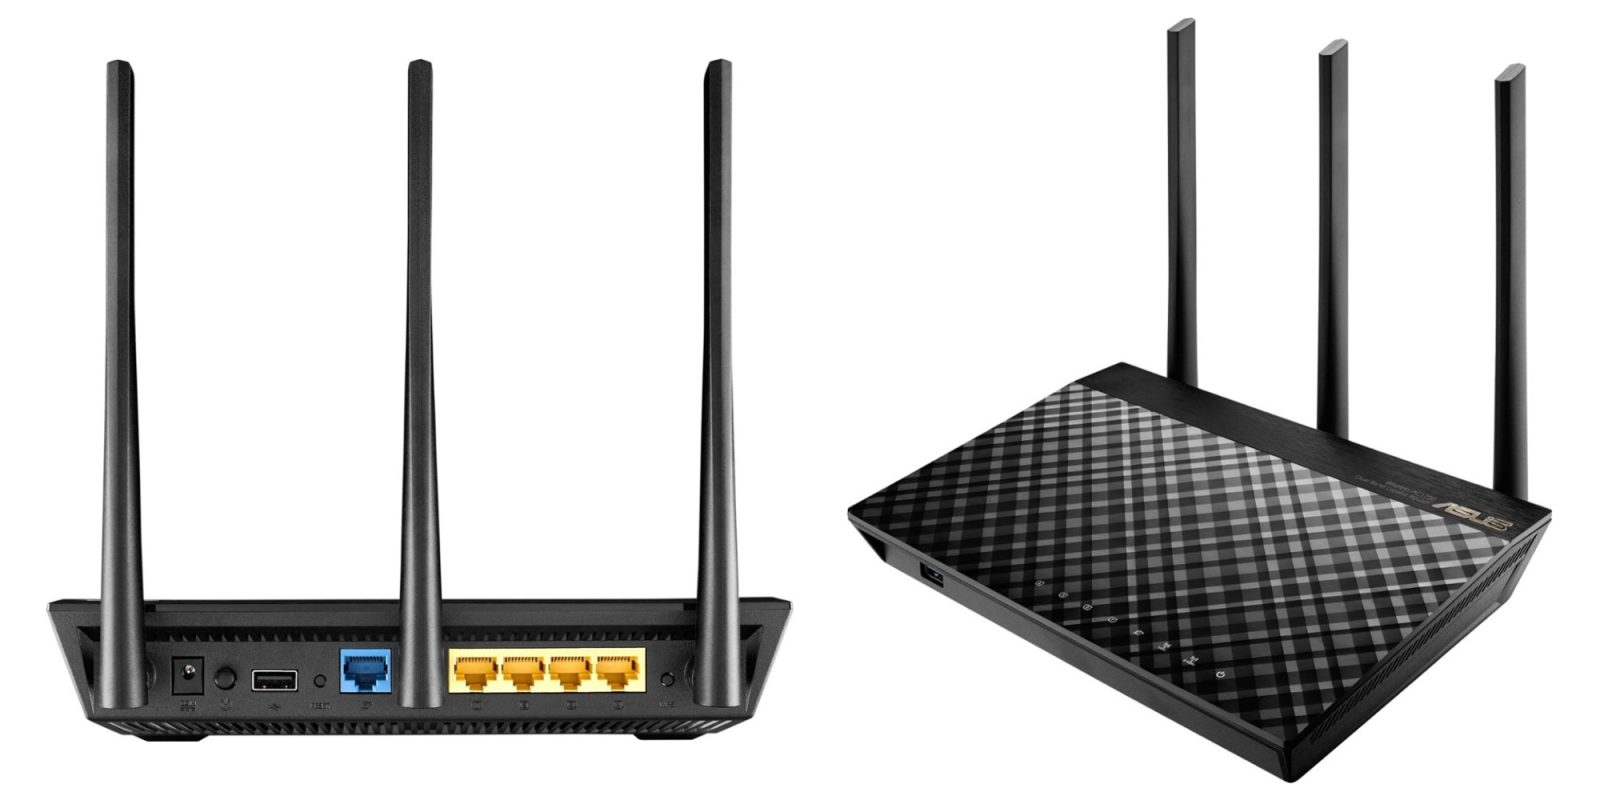 Save 20% on this ASUS Dual-Band 3×3 802.11ac Wi-Fi Router at $80 shipped, more from $47